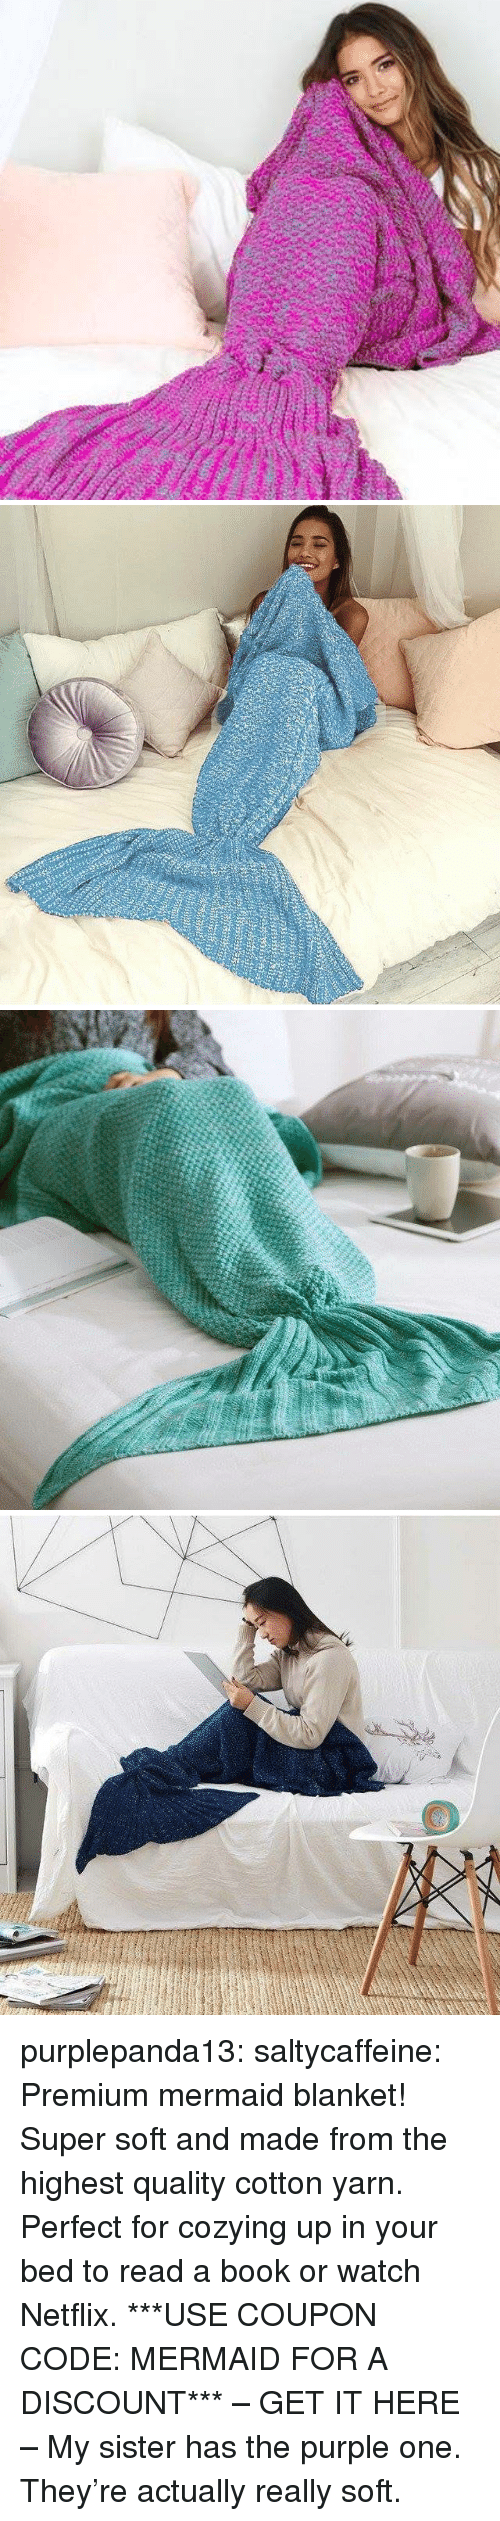 Netflix, Tumblr, and Blog: purplepanda13:  saltycaffeine:  Premium mermaid blanket! Super soft and made from the highest quality cotton yarn. Perfect for cozying up in your bed to read a book or watch Netflix. ***USE COUPON CODE: MERMAID FOR A DISCOUNT*** – GET IT HERE –   My sister has the purple one. They're actually really soft.